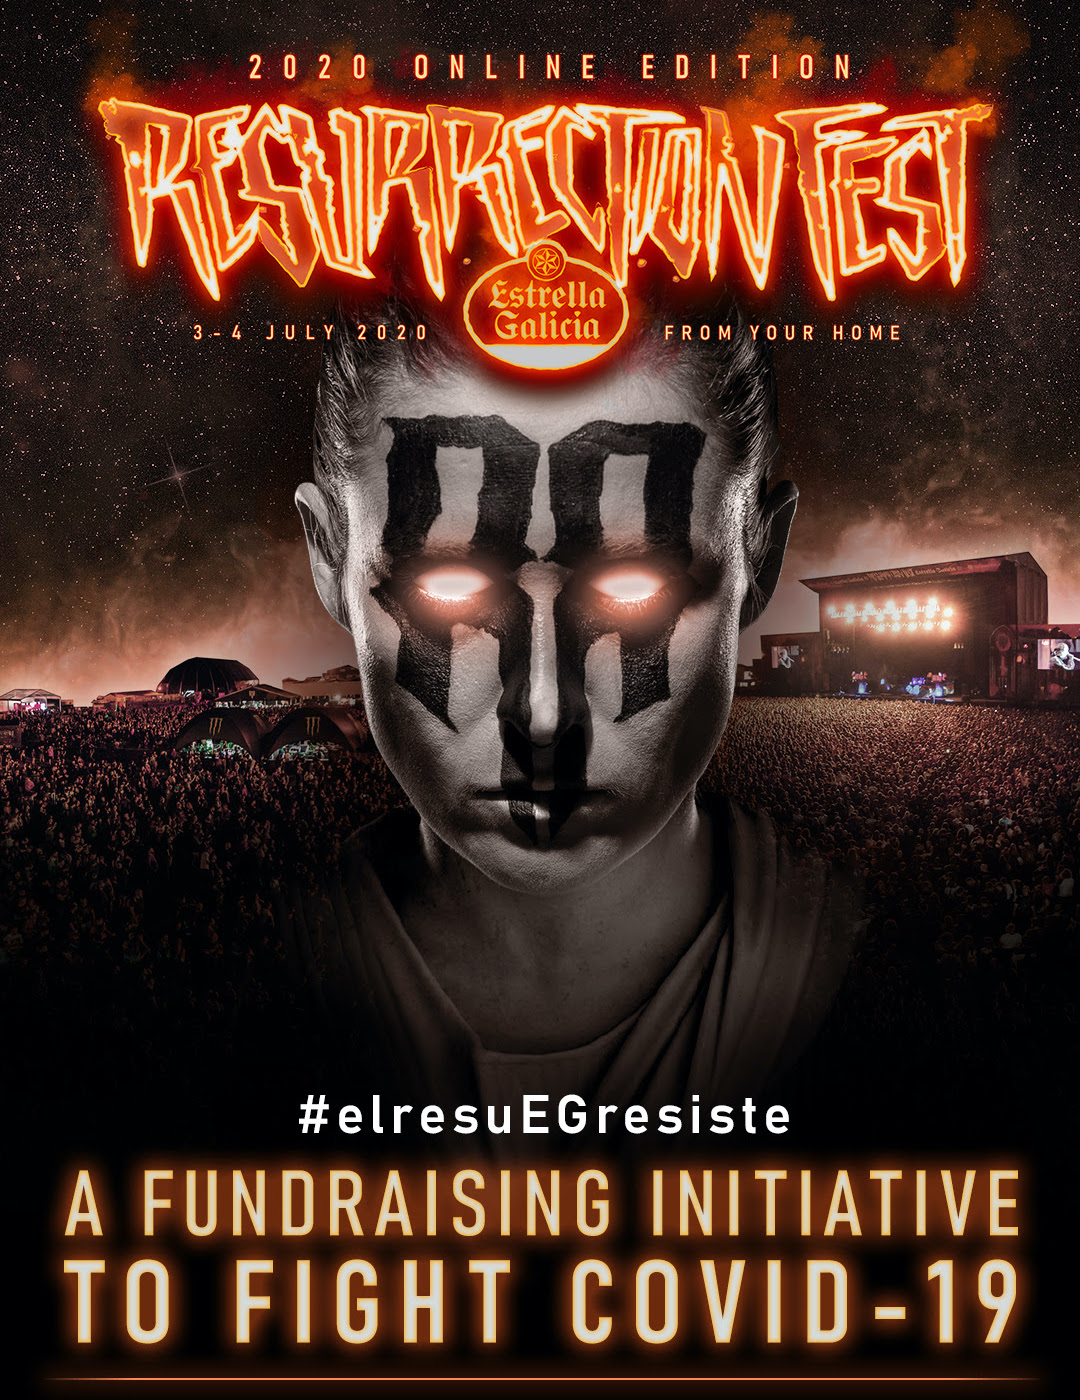 Resurrection Fest 2020 Online